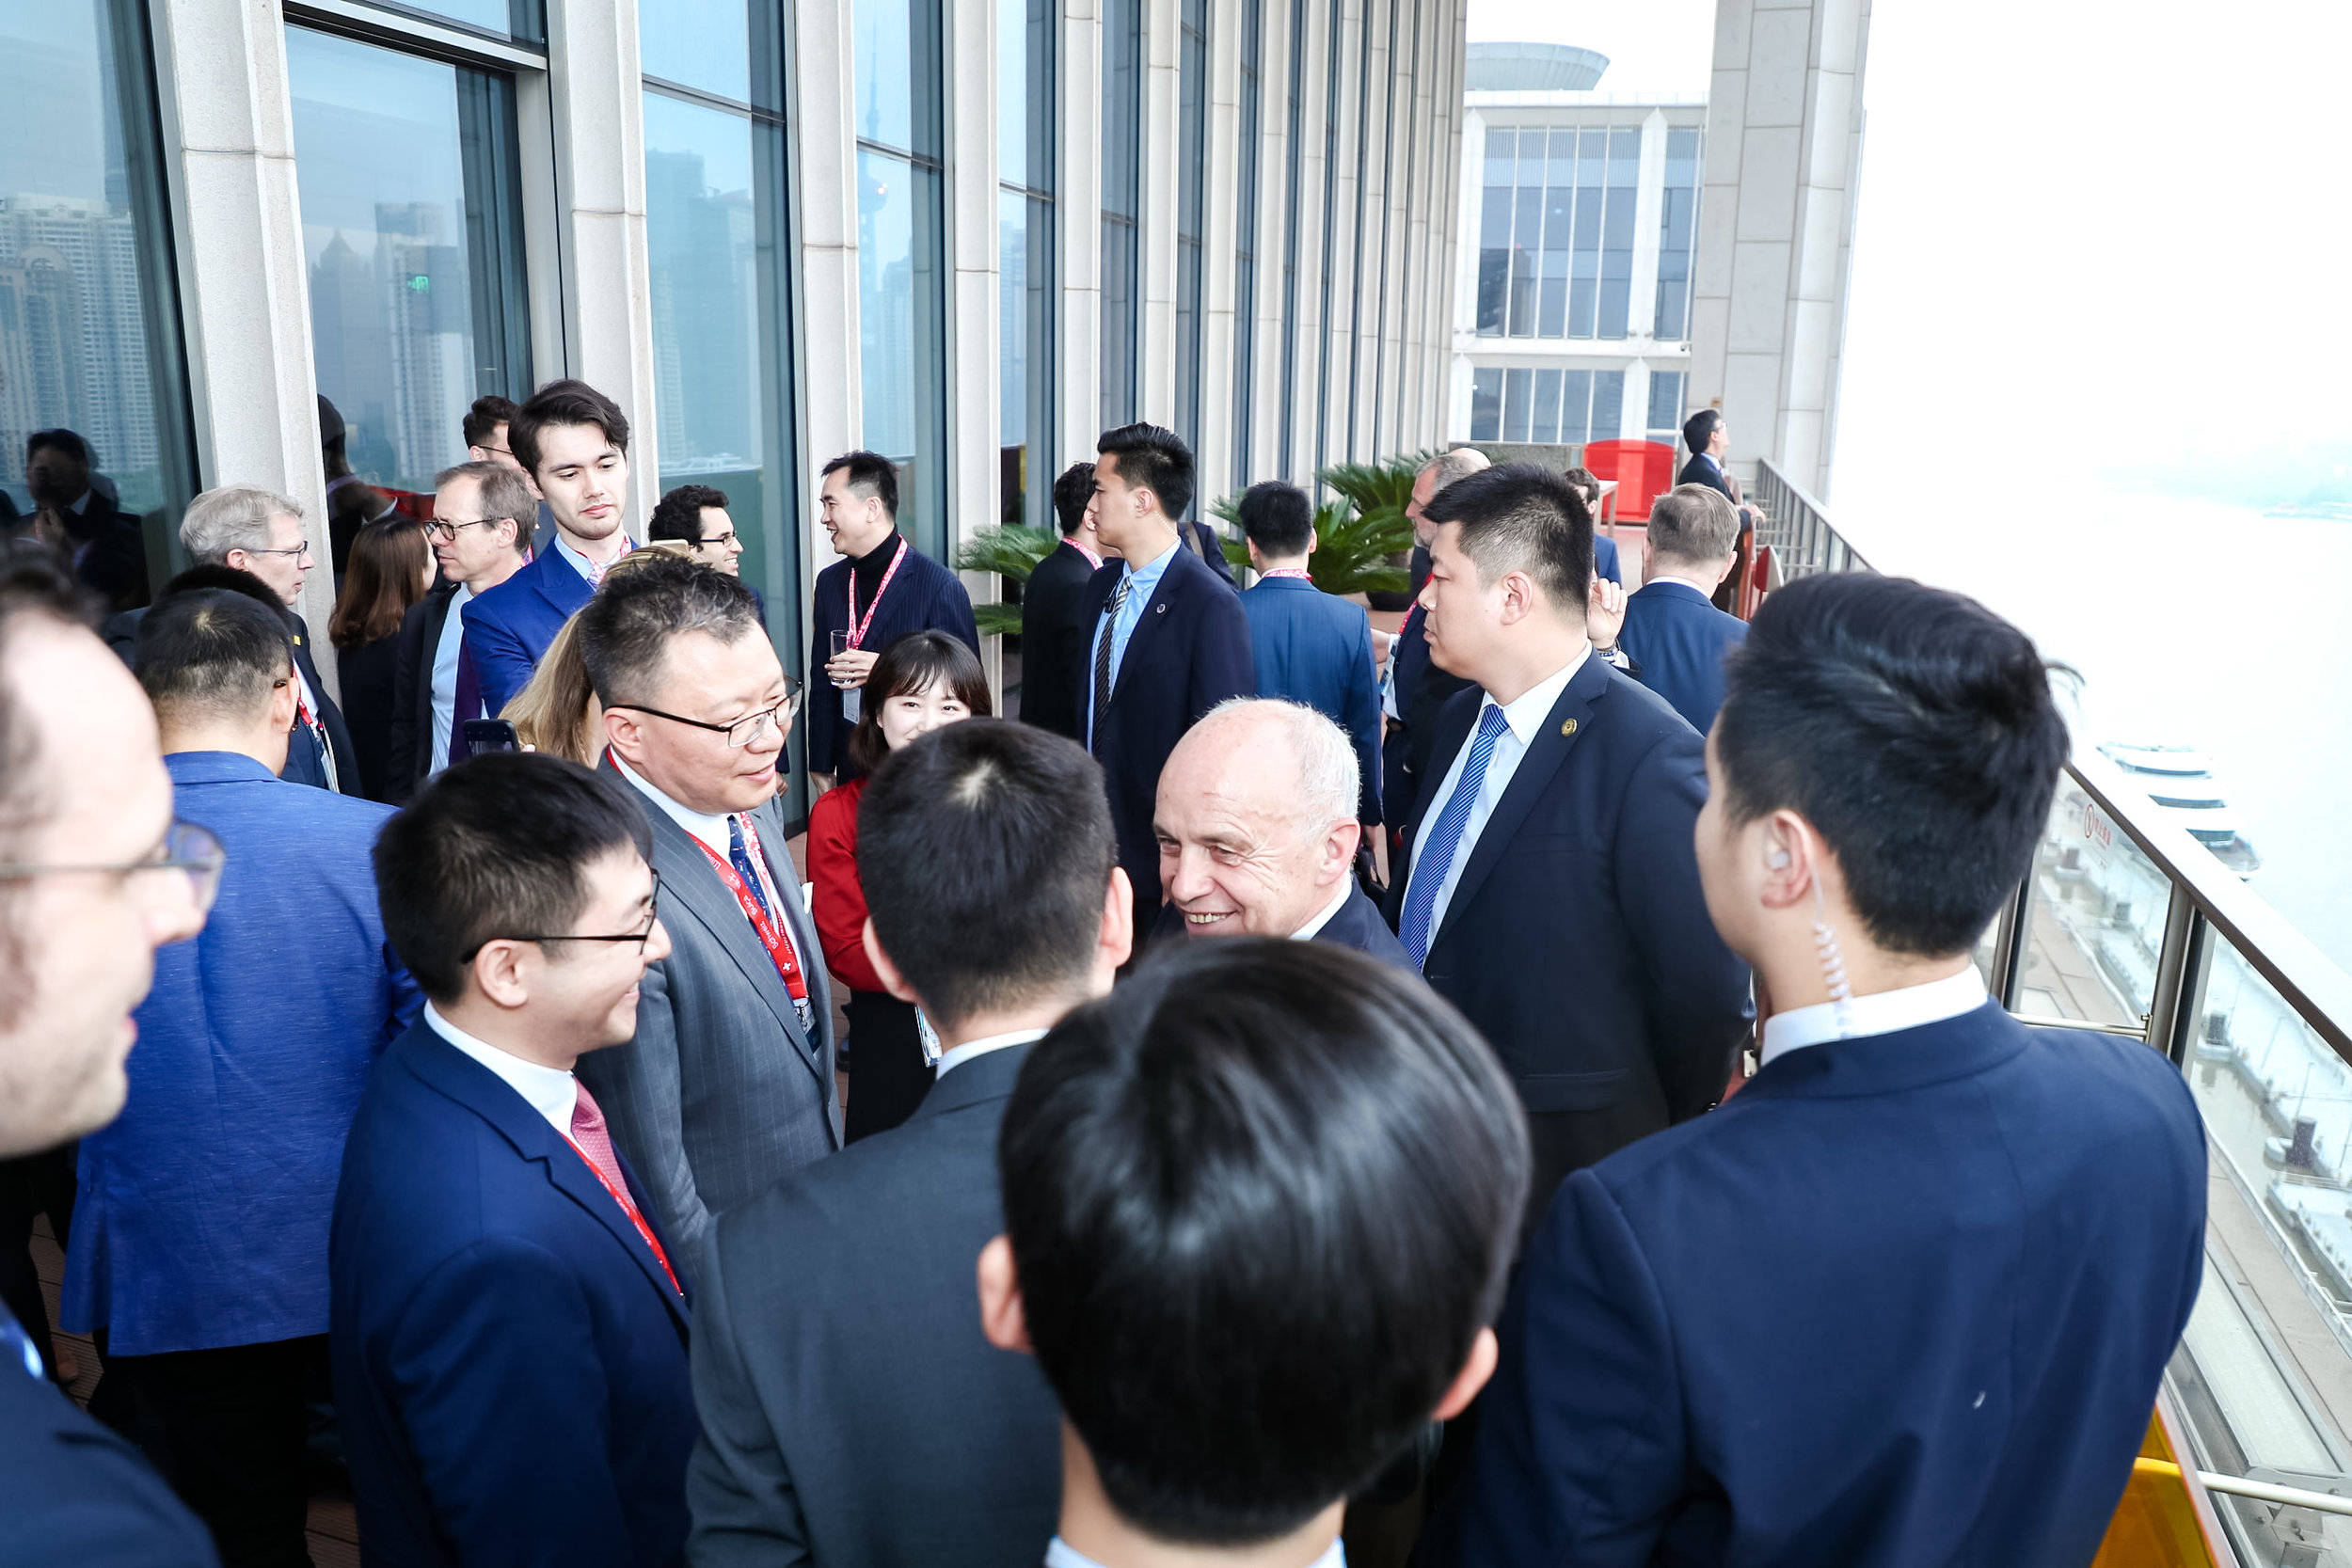 The Swiss and Chinese delegations gathered for the networking cocktail reception at the Bund .